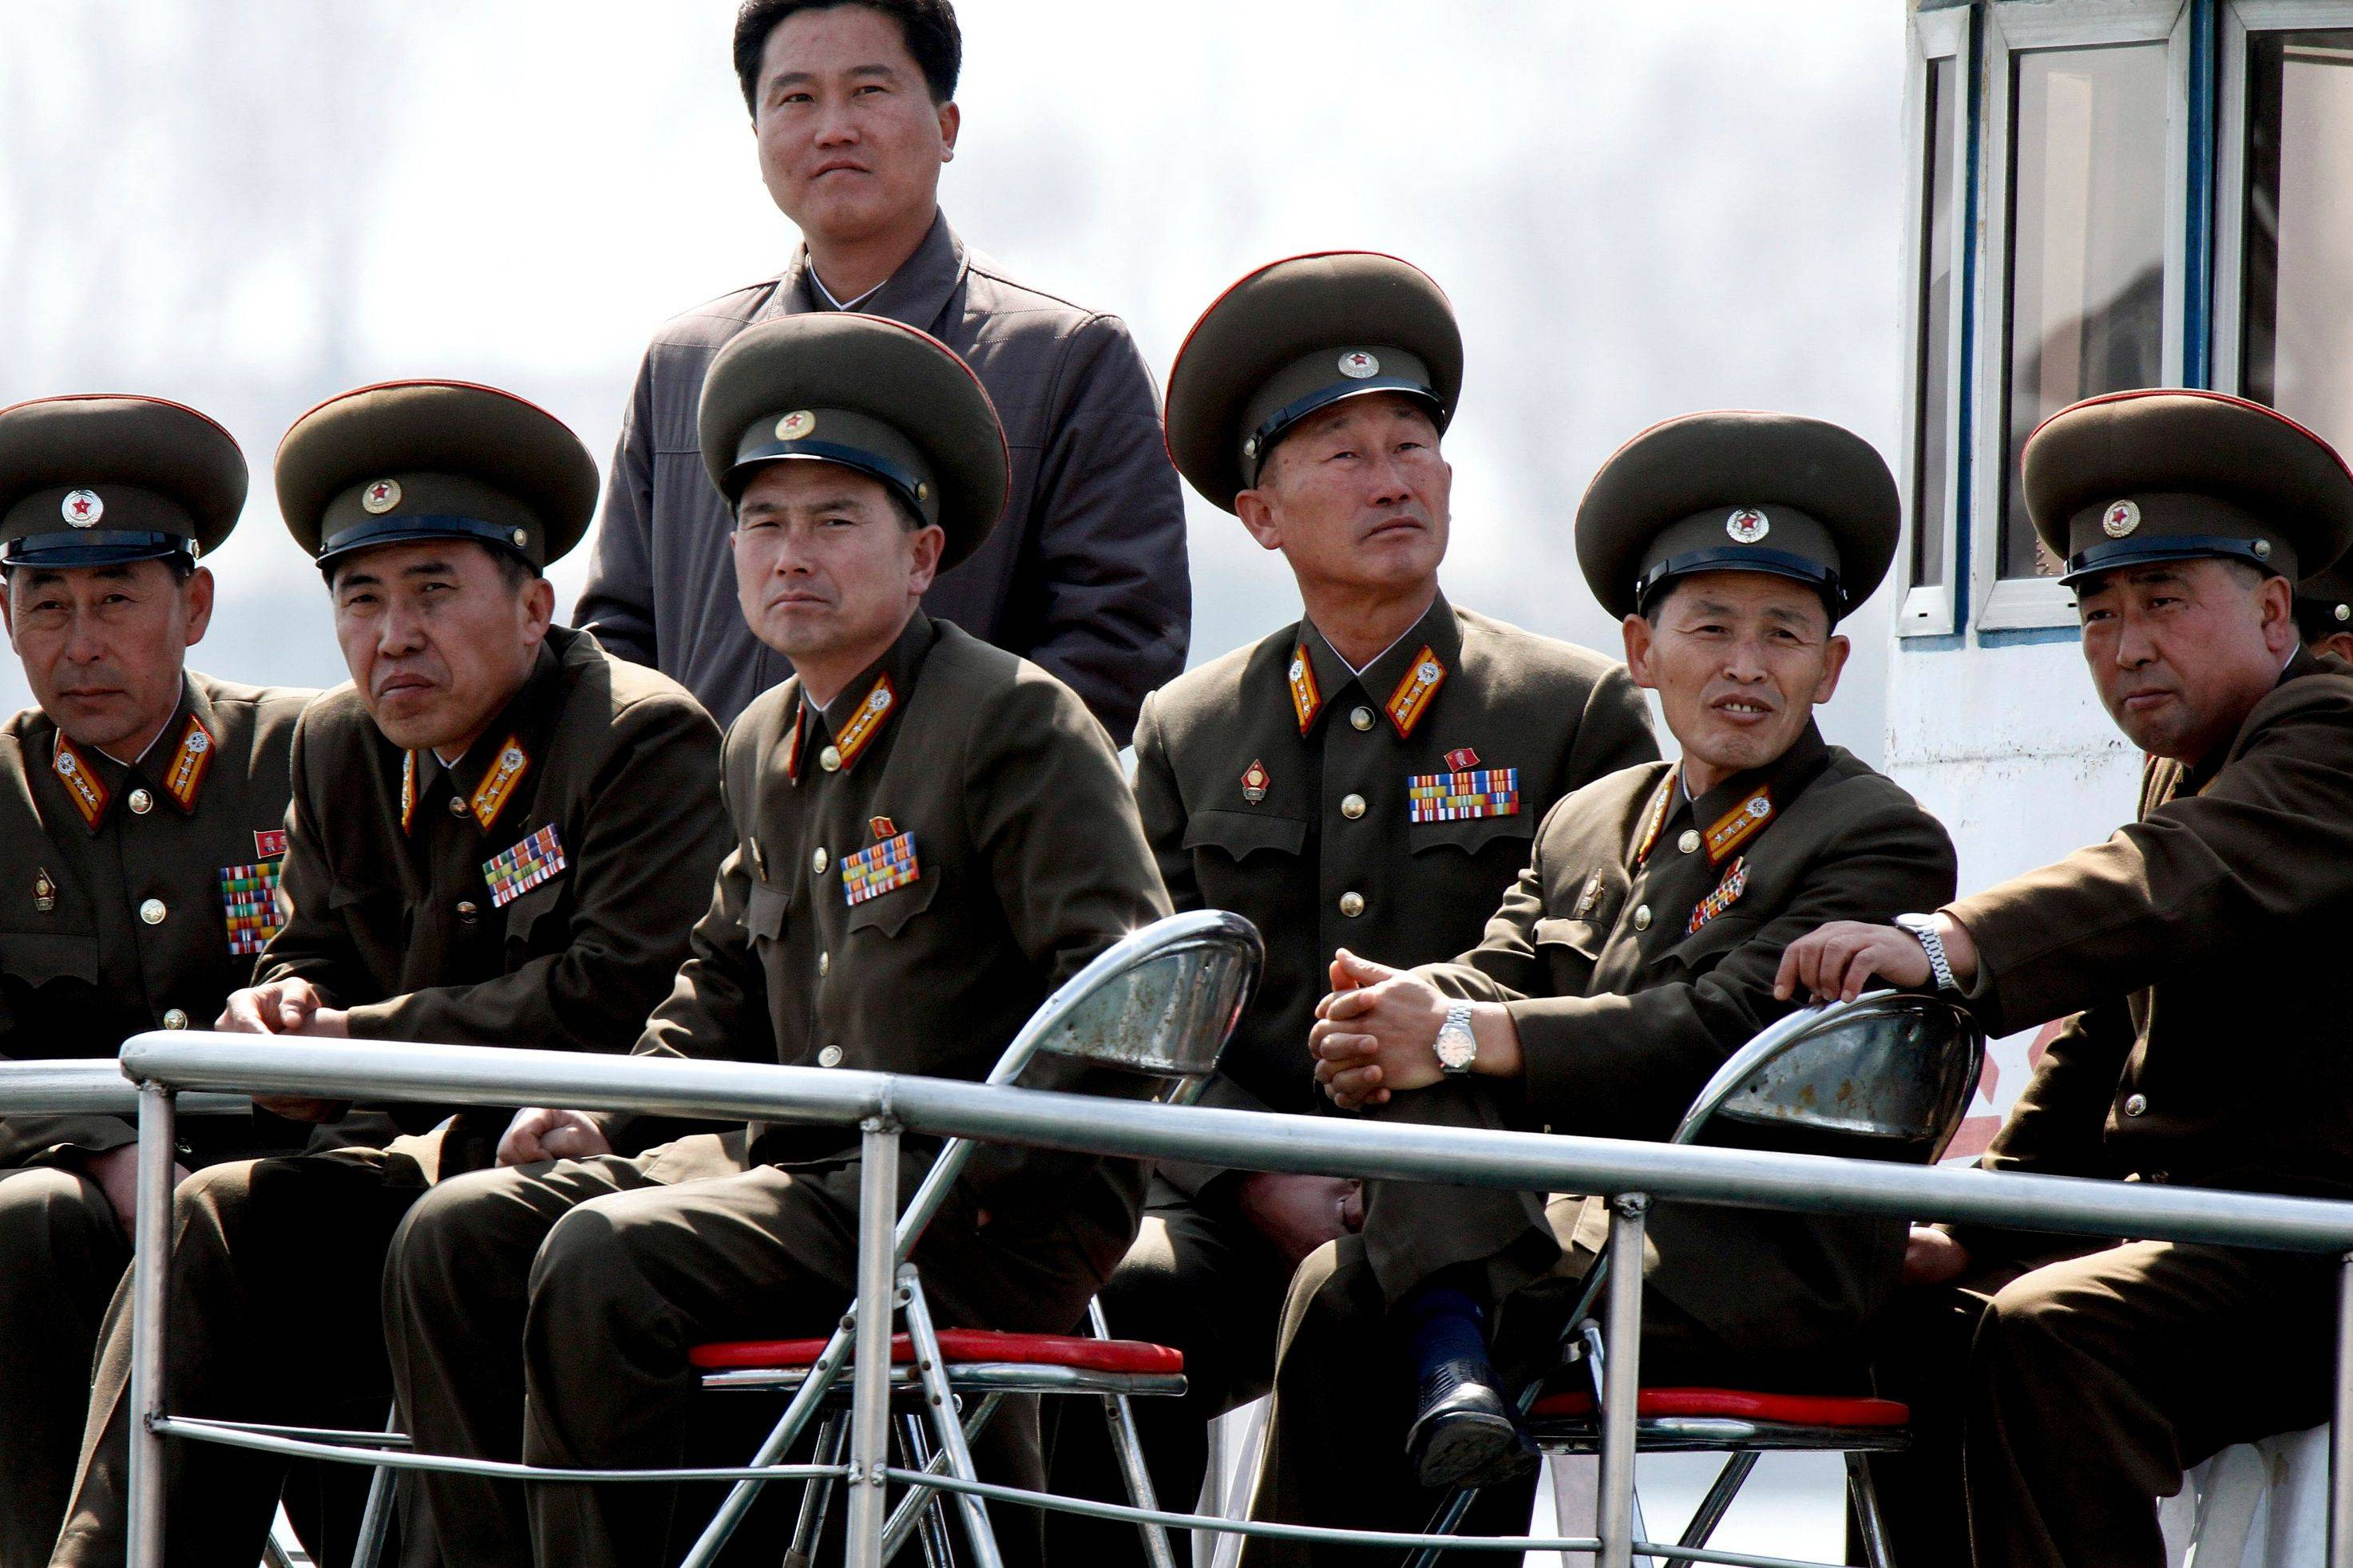 North Korean military officers look from a sightseeing boat sailing on the Yalu River, the China-North Korea border river. North Korea delivered a fresh round of rhetoric Thursday with claims it had �powerful striking means� on standby for a missile launch.